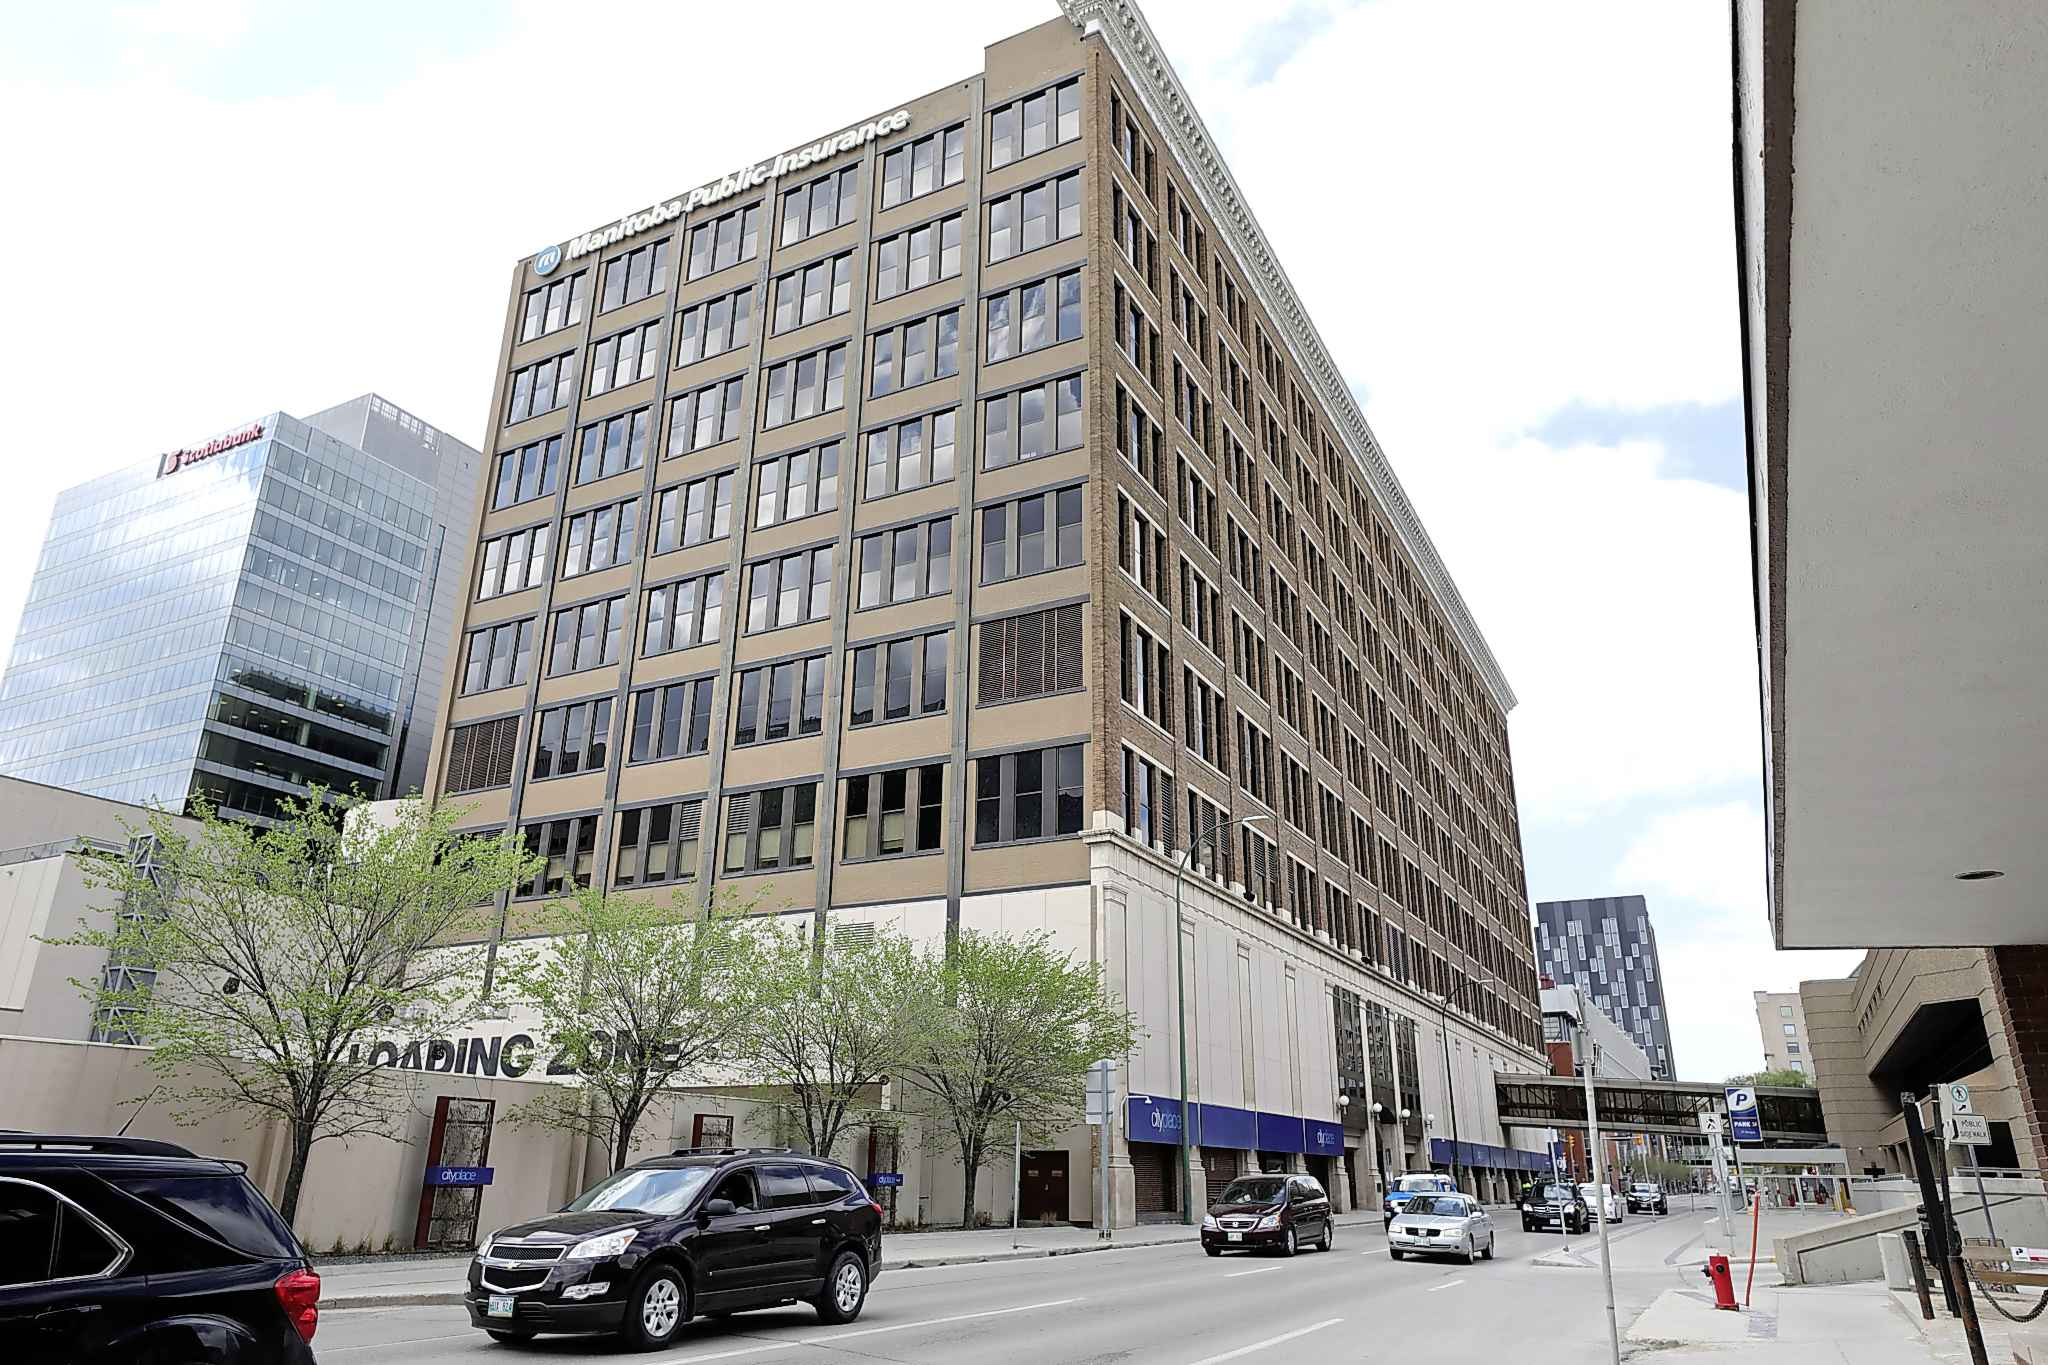 RUTH BONNEVILLE / WINNIPEG FREE PRESS  The downtown T. Eaton Co. Mail Order and Catalogue Building was nominated by the historical buildings and resources committee for its historical significance and definitive Sullivanesque-style architecture.